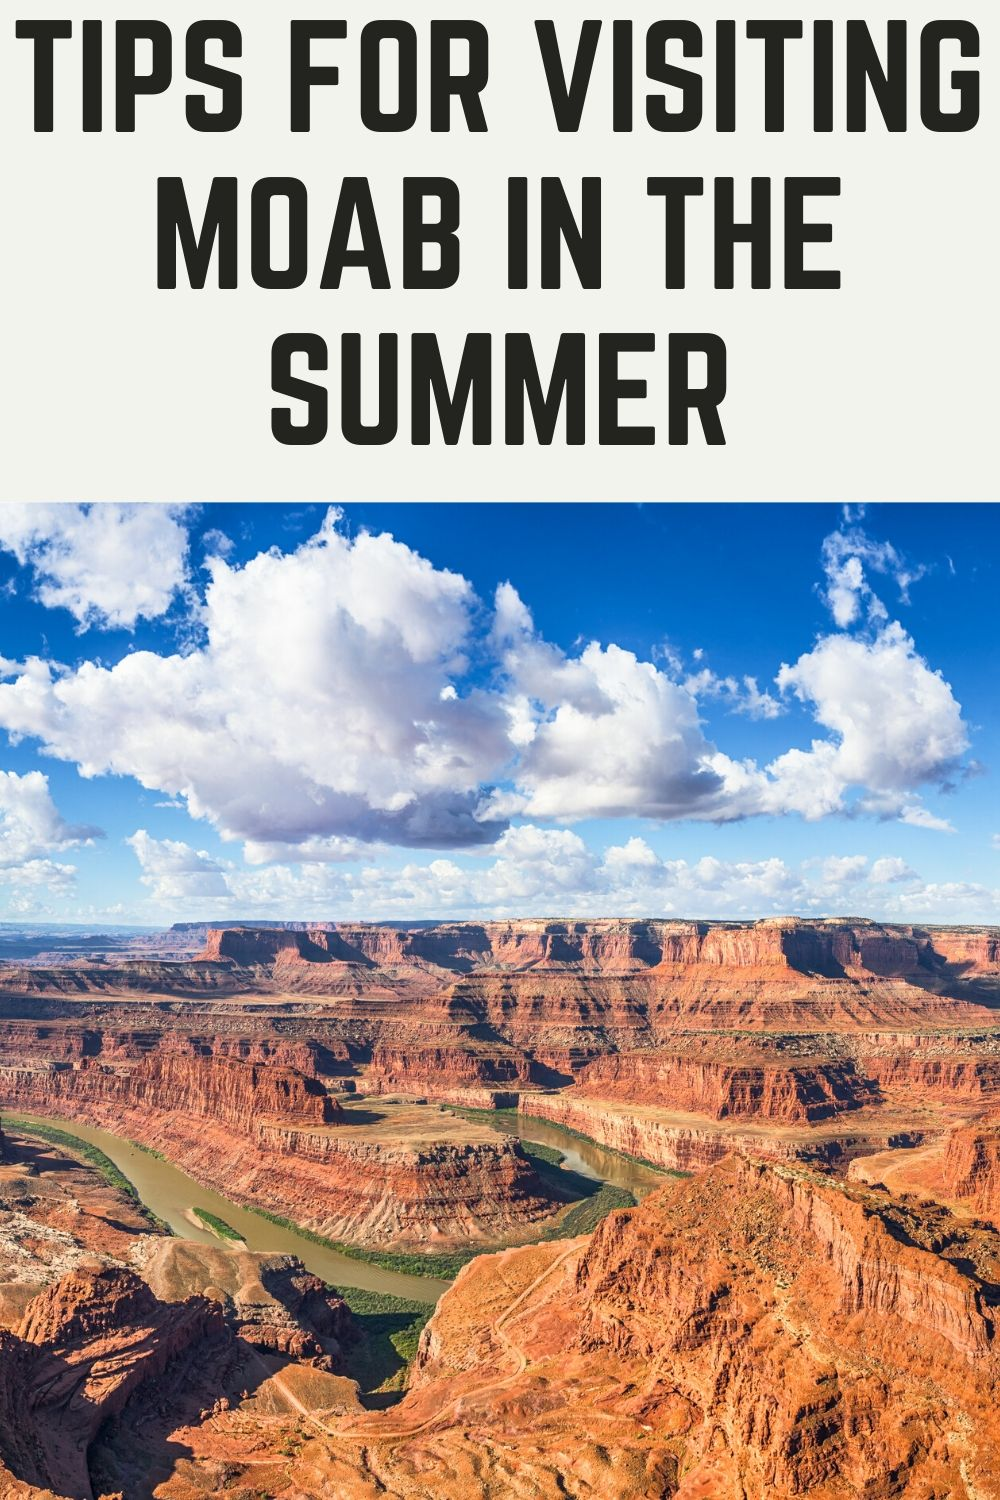 Tips for Visiting Moab in the Summer